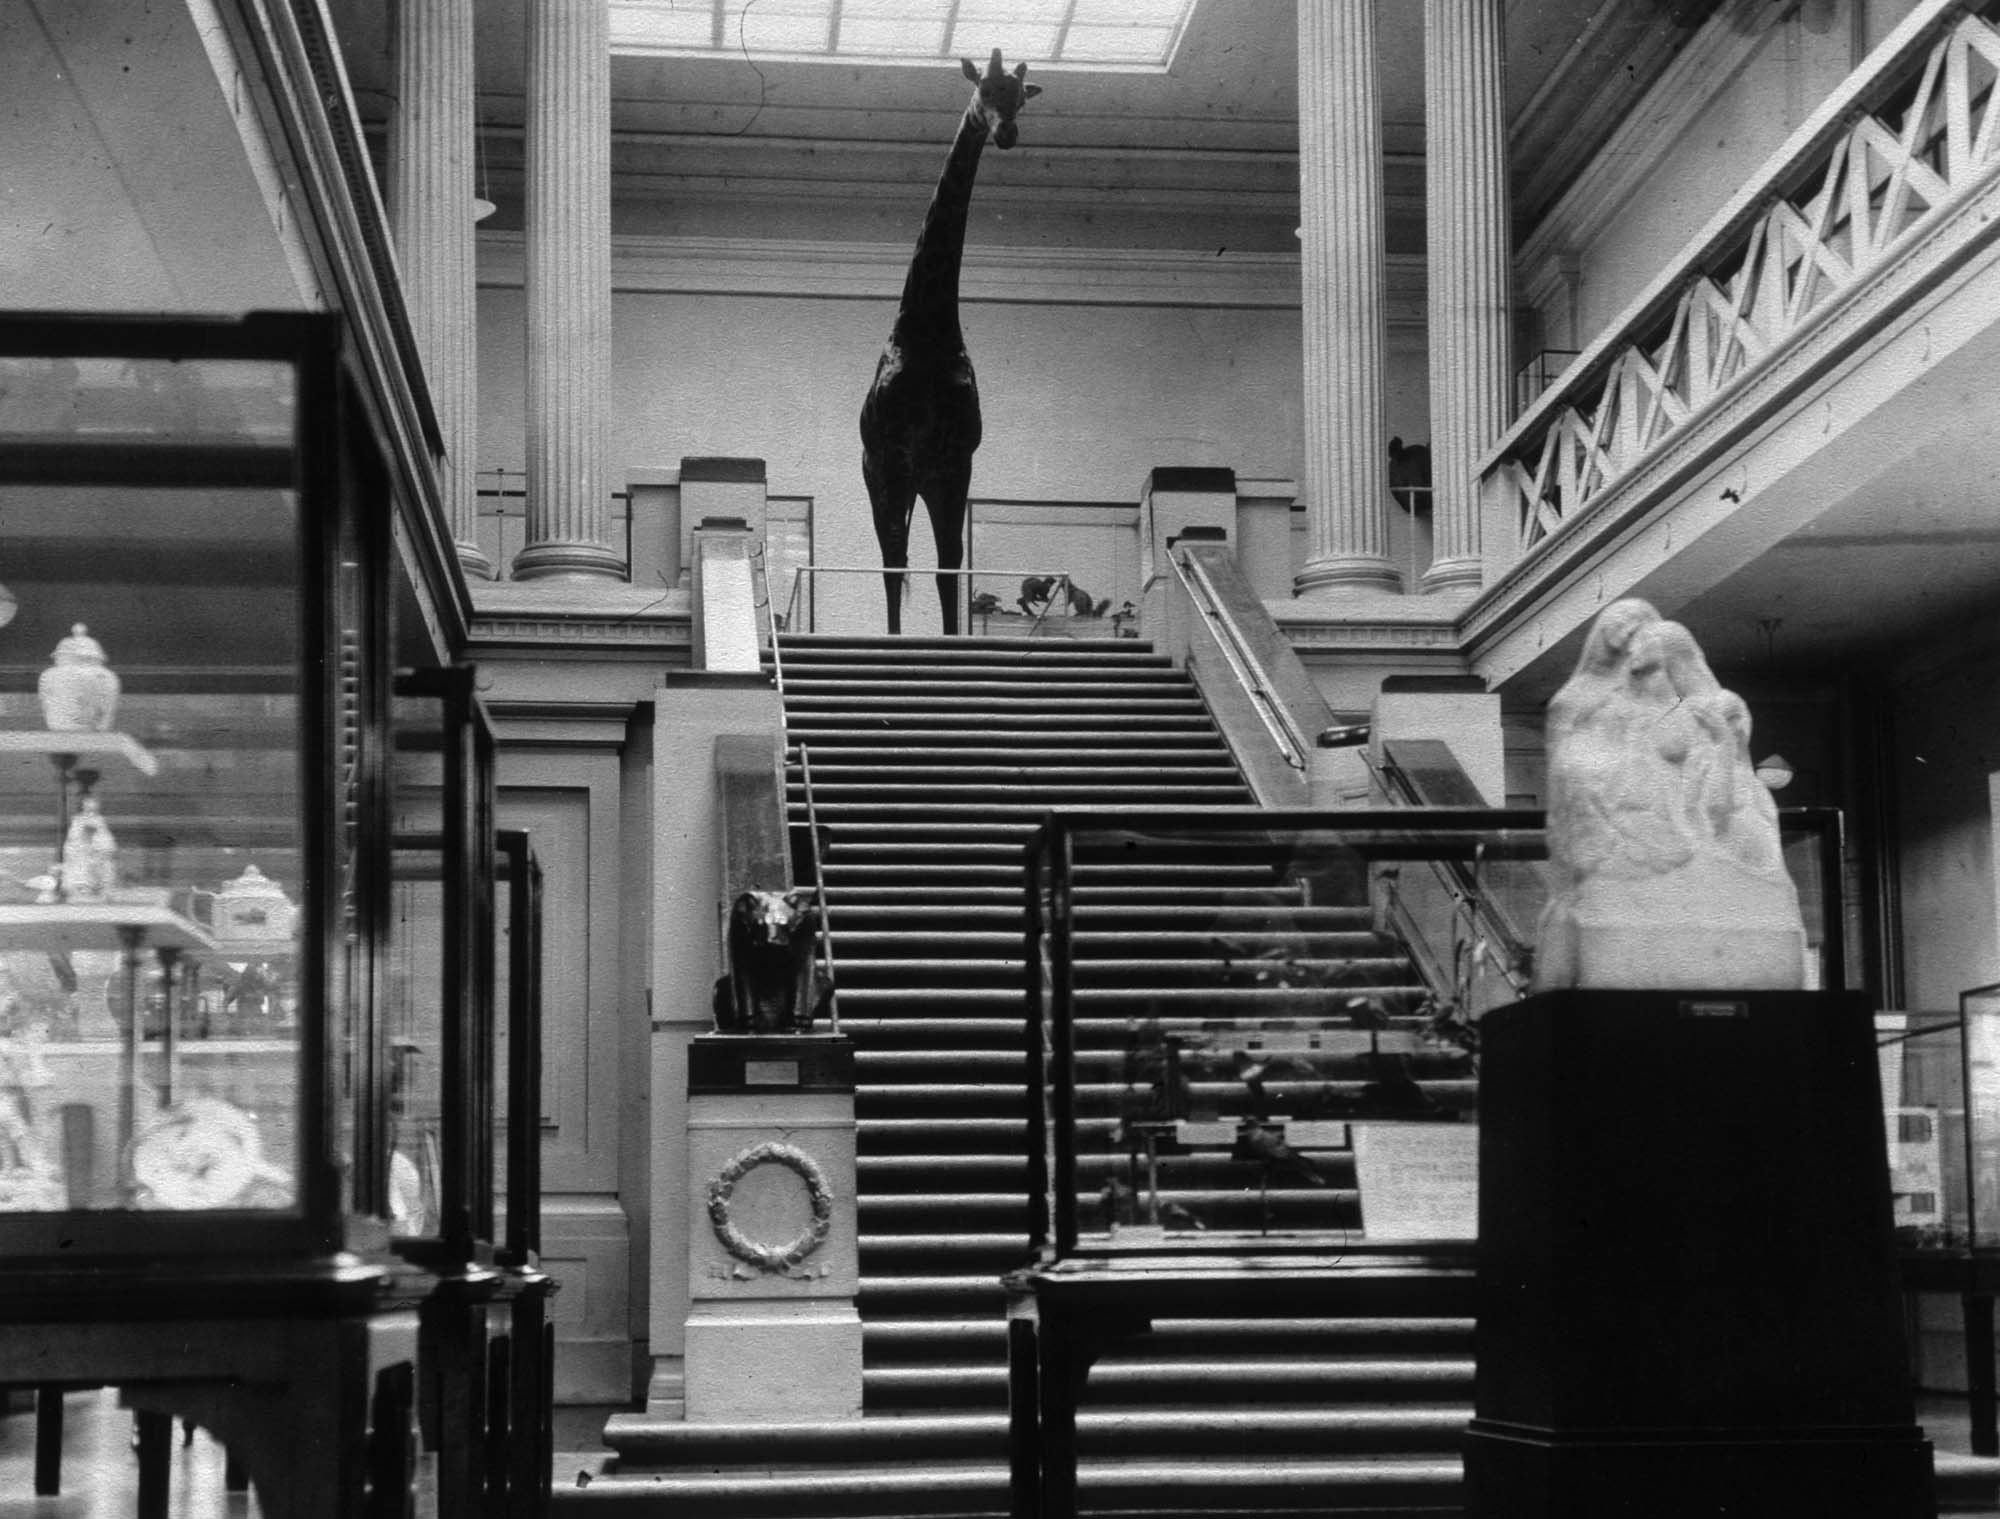 The main gallery with George the Giraffe, 1936 -